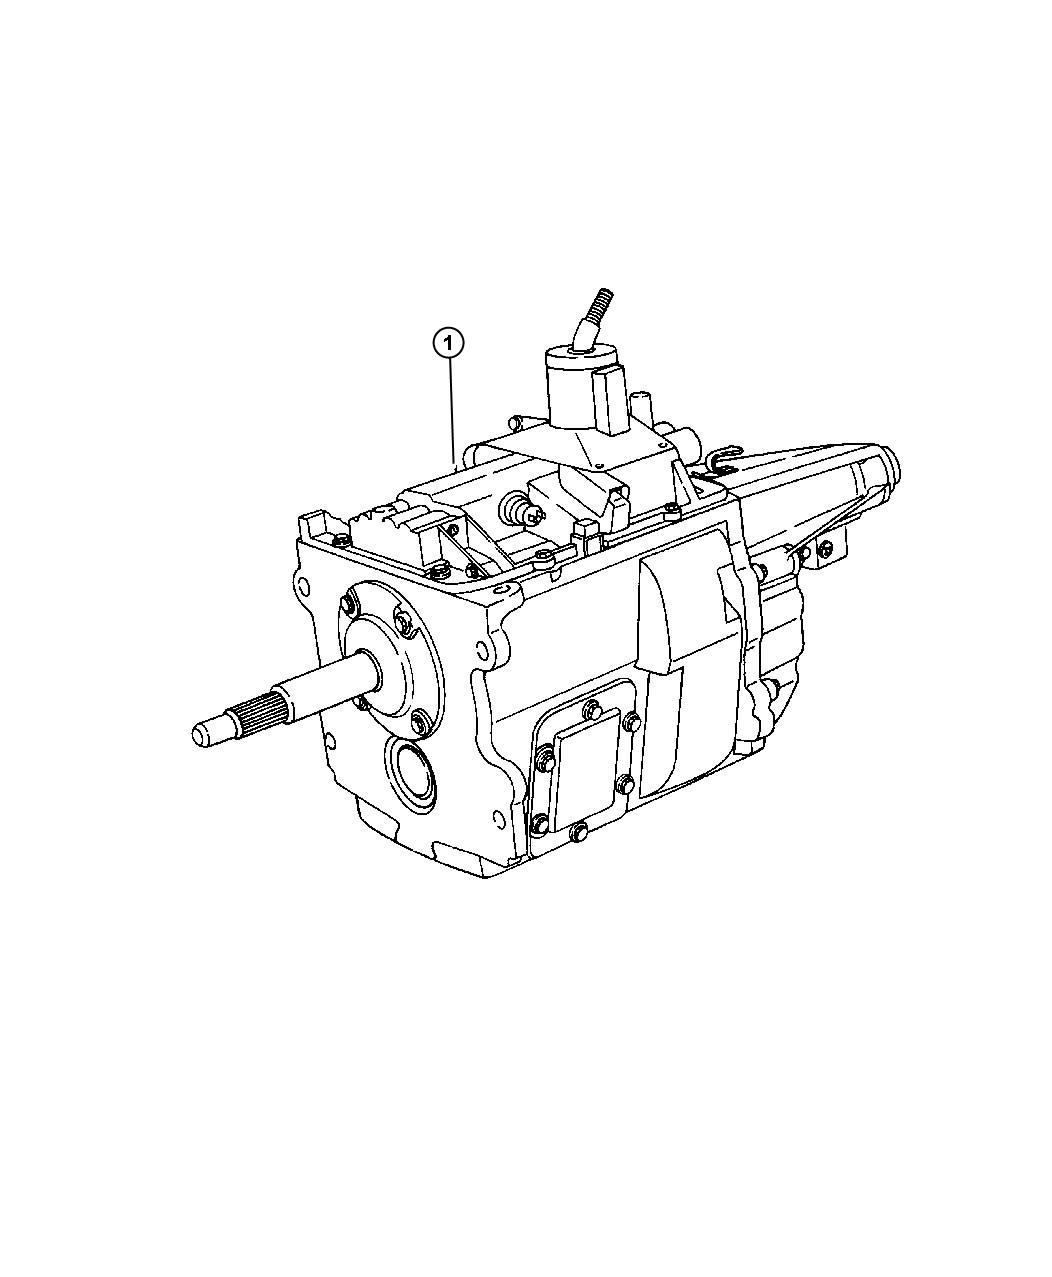 Dodge Grand Caravan Manual Transmission Schematic